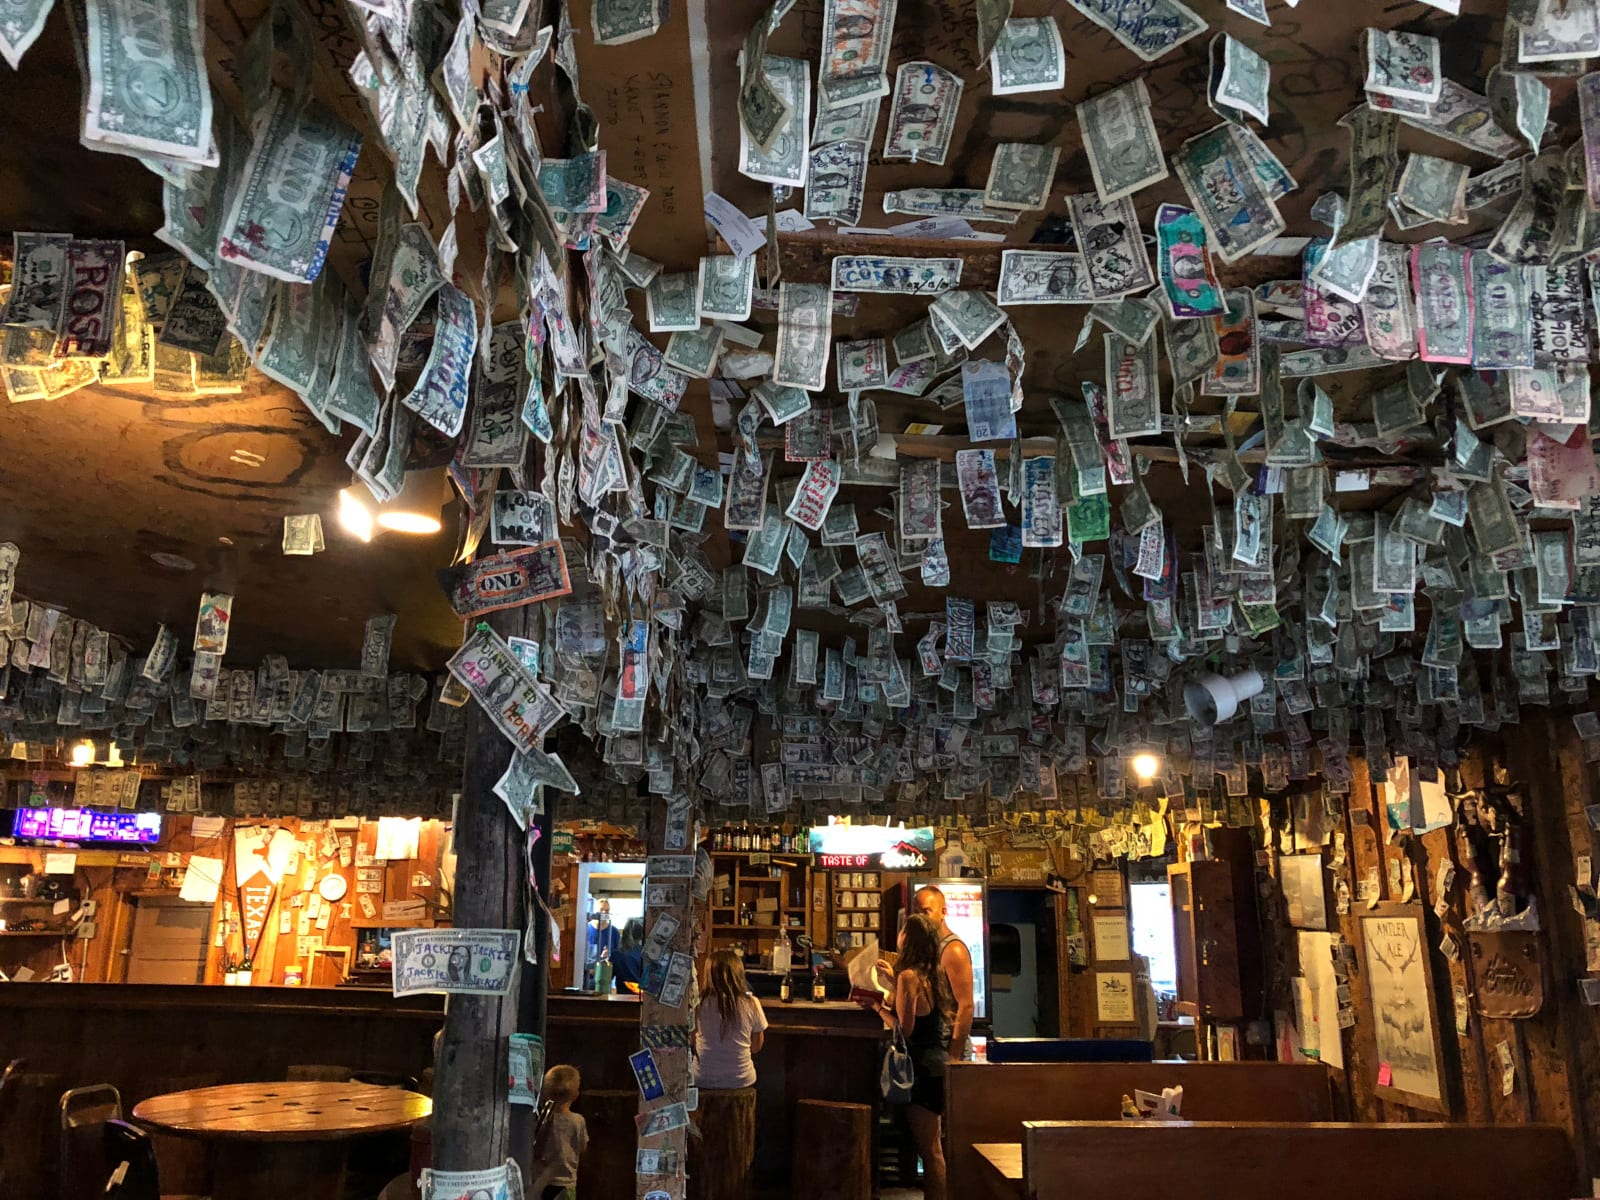 Pine CO Bucksnort Saloon Ceiling Dollar Bills